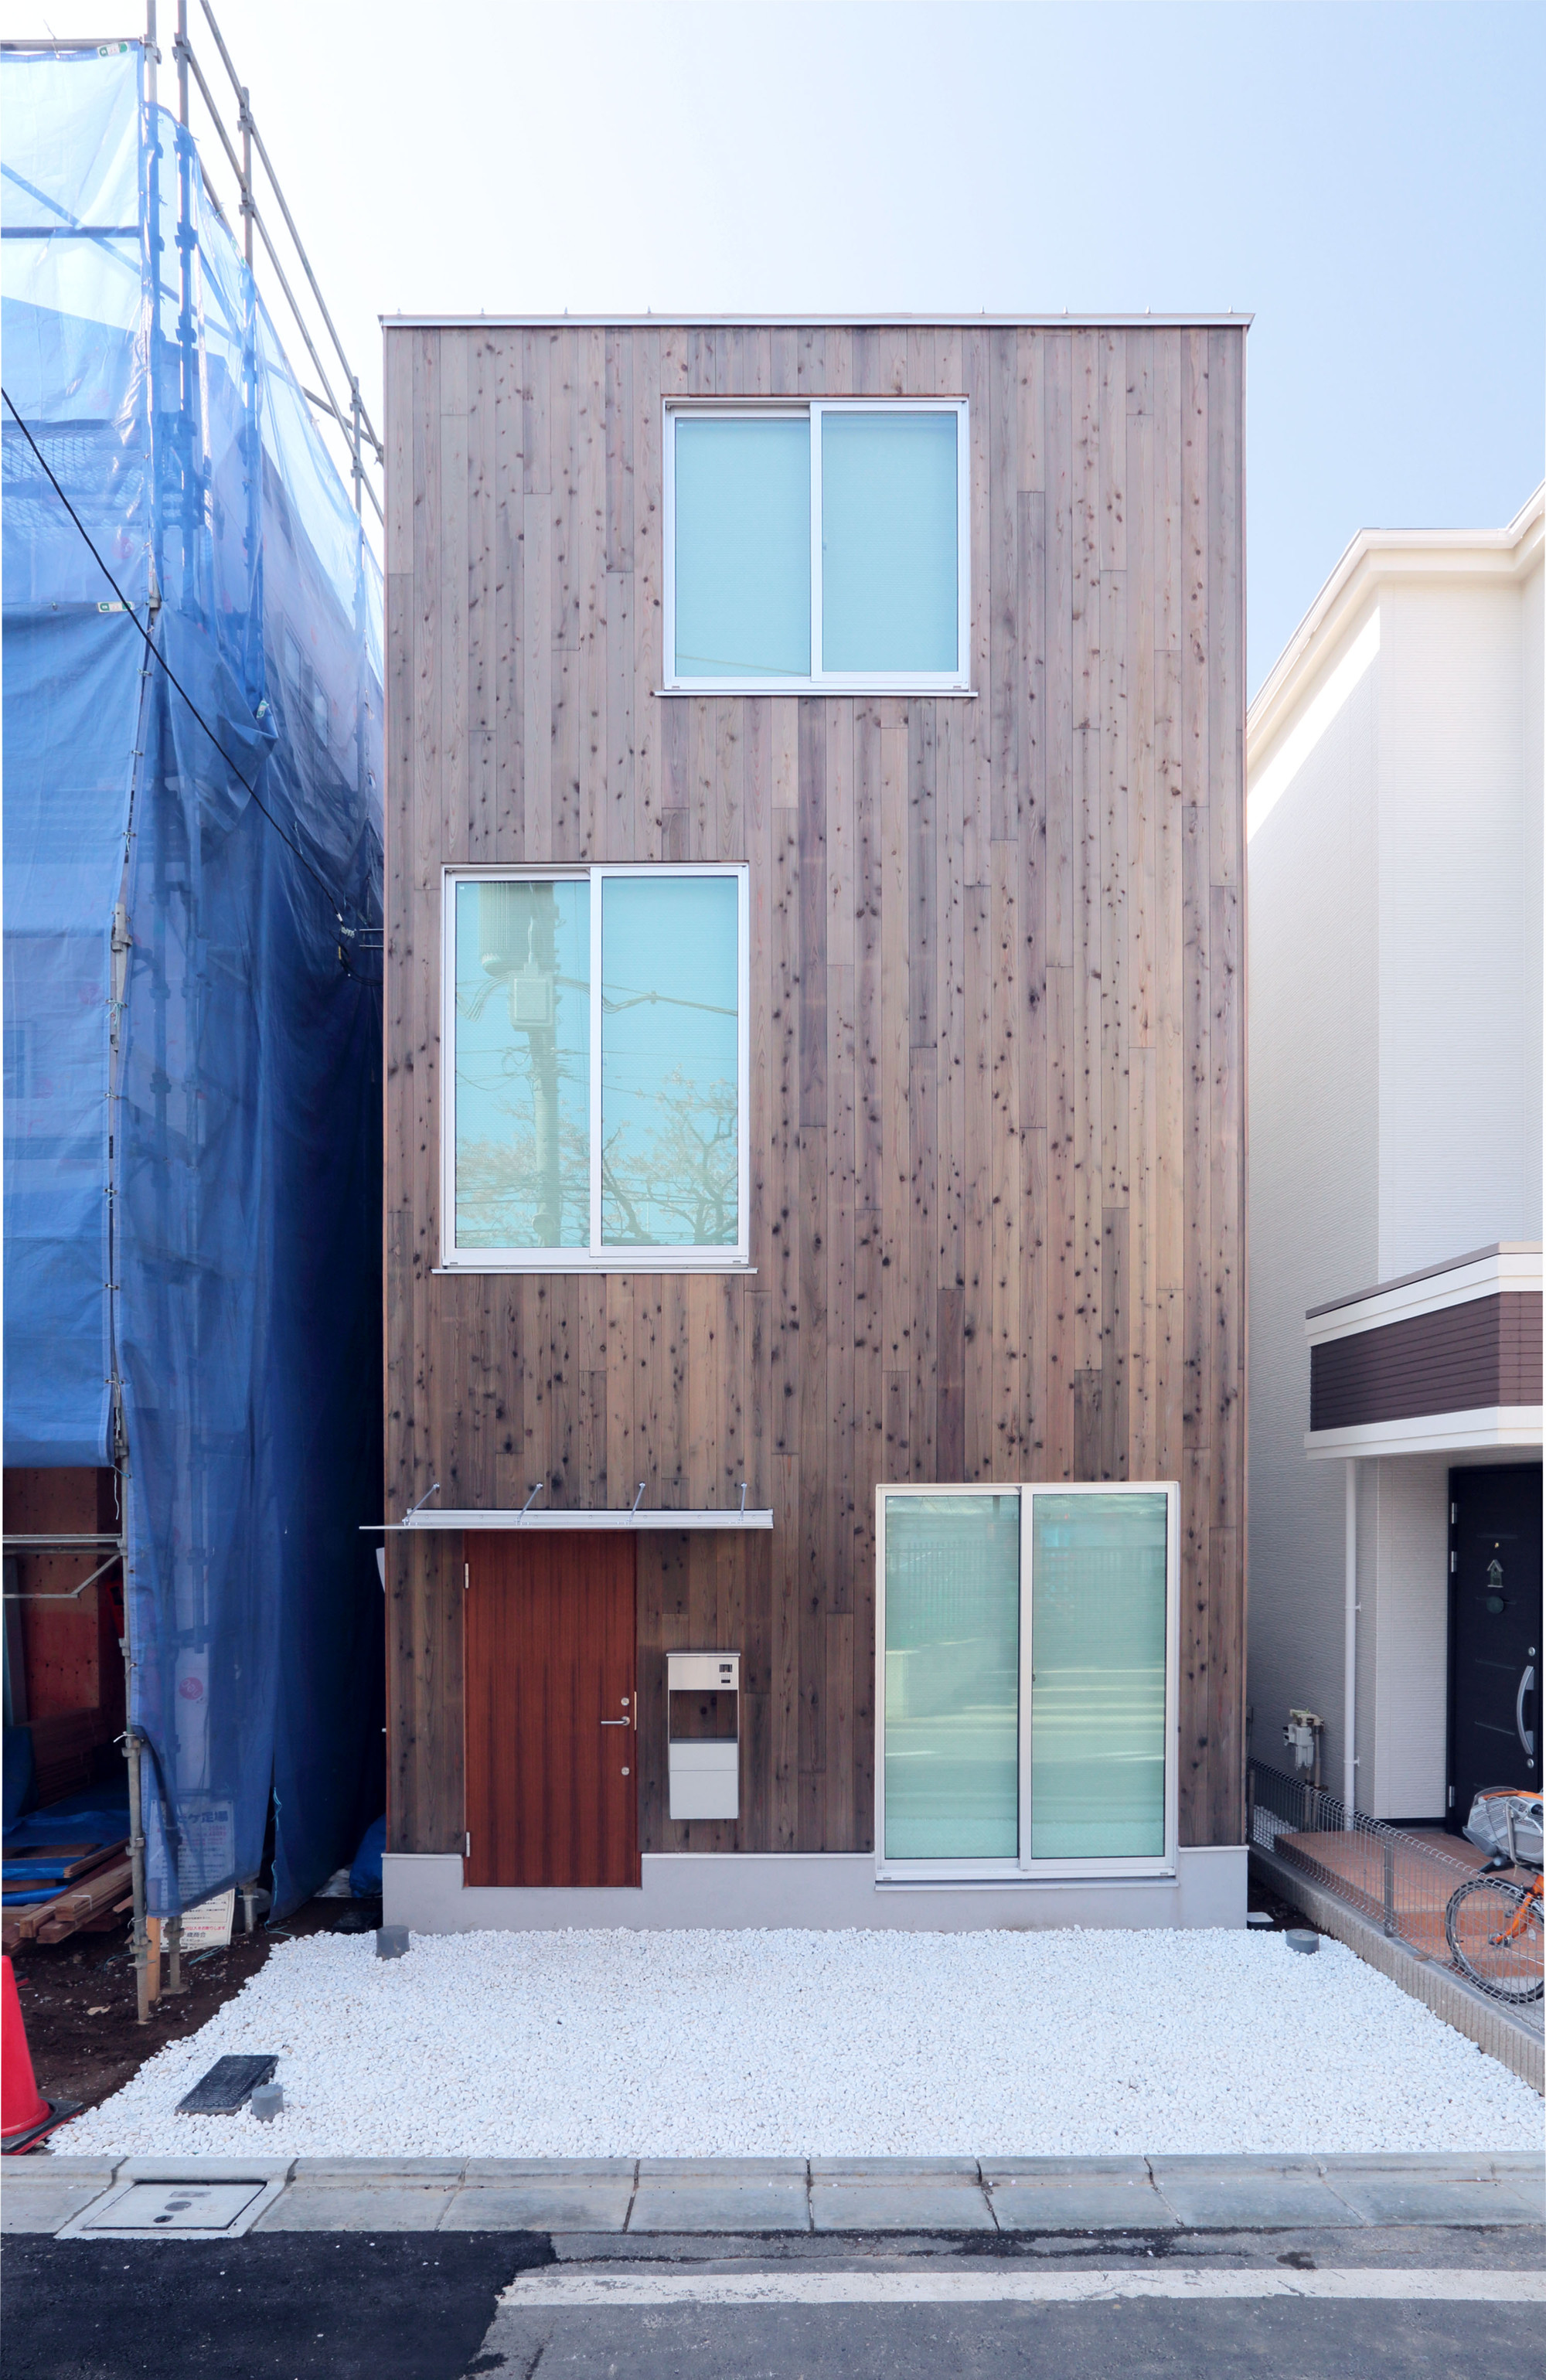 Design Your Own Home With MUJIs Prefab Vertical House ArchDaily